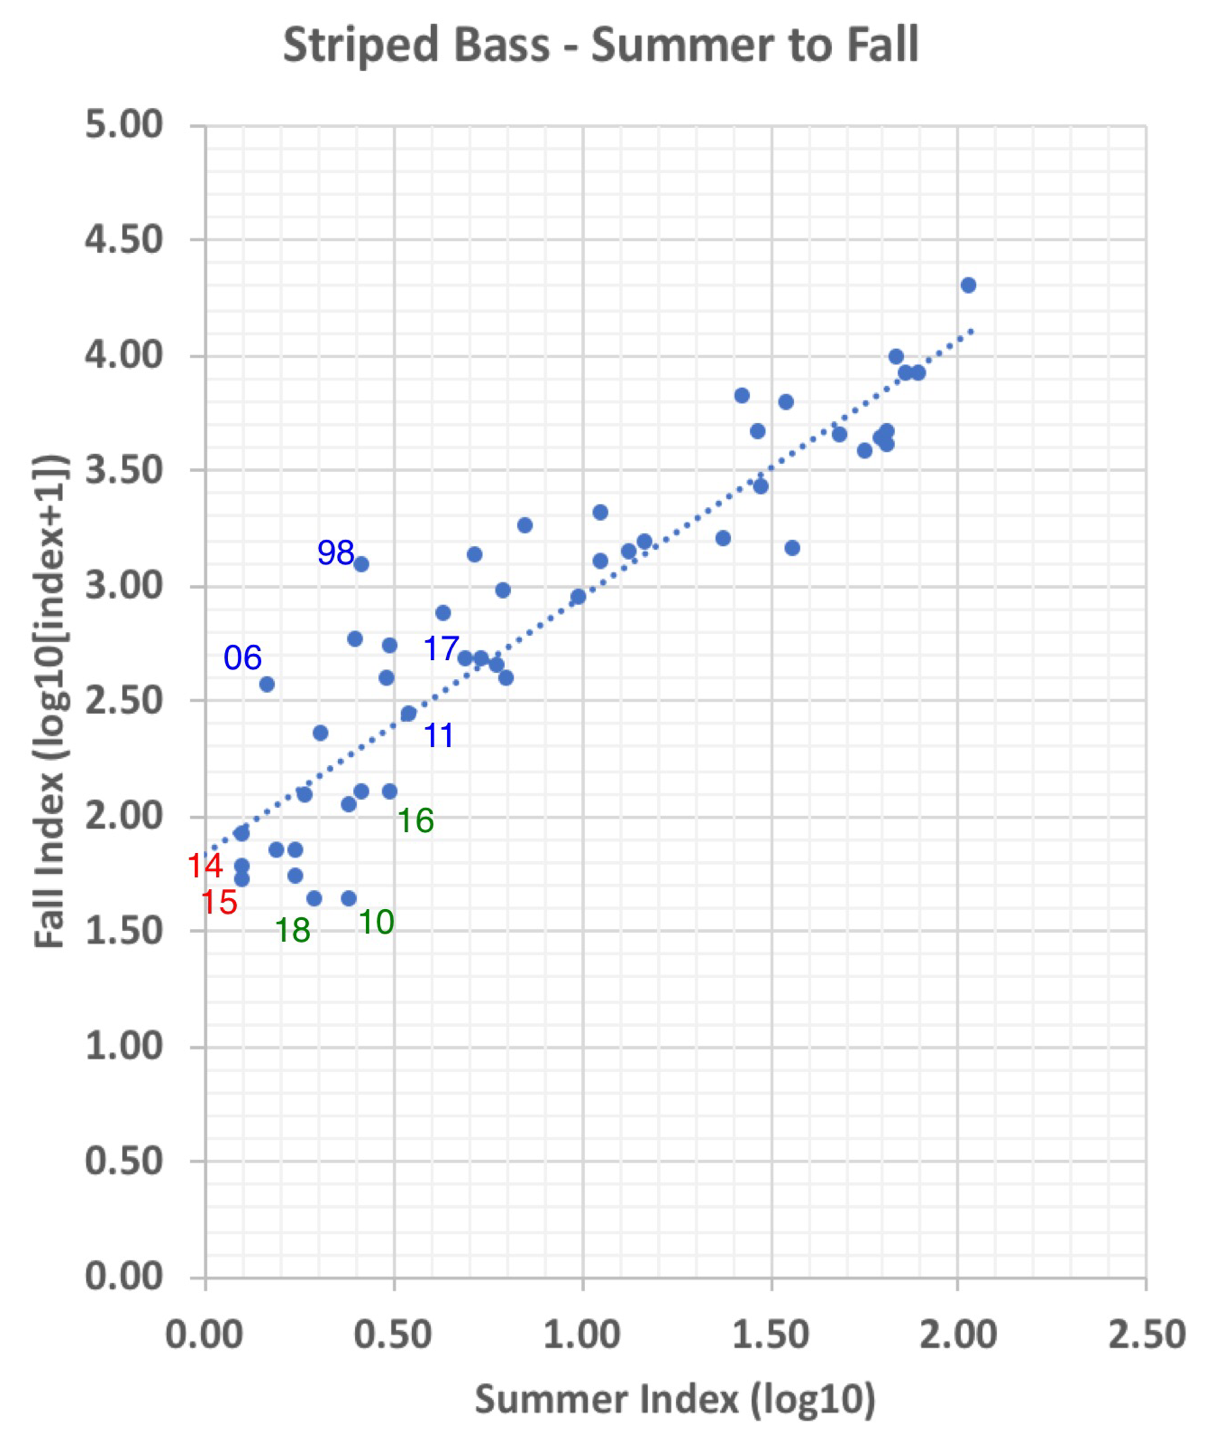 Figure 3. Striped bass Fall Midwater Trawl Survey Index (log10[index+1]) versus prior Summer Townet Index (log10). Select years labeled, with color of number showing year type: blue=wet, green=normal, and red=critically dry.